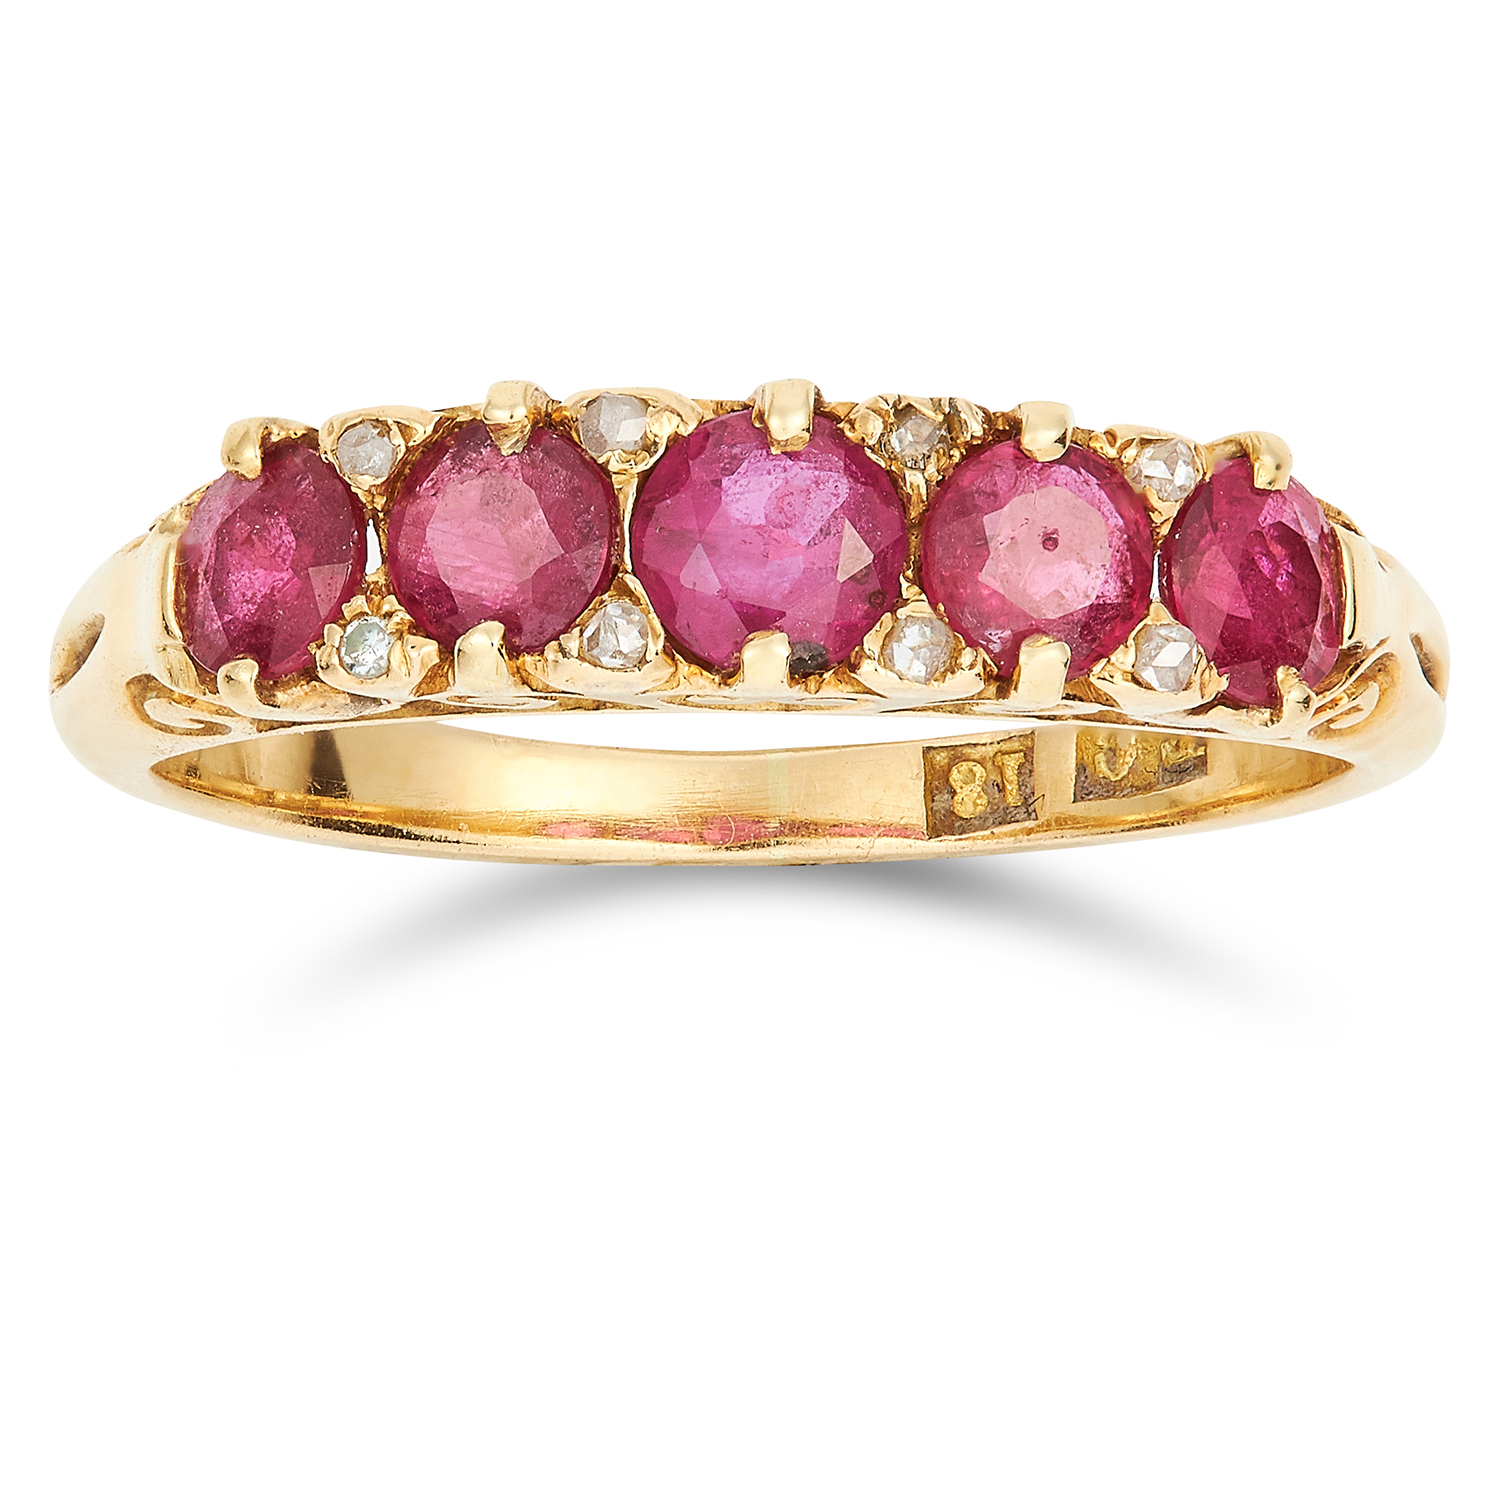 Los 26 - ANTIQUE UNHEATED RUBY AND DIAMOND RING CIRCA 1890 set with five cushion cut rubies totalling 0.70